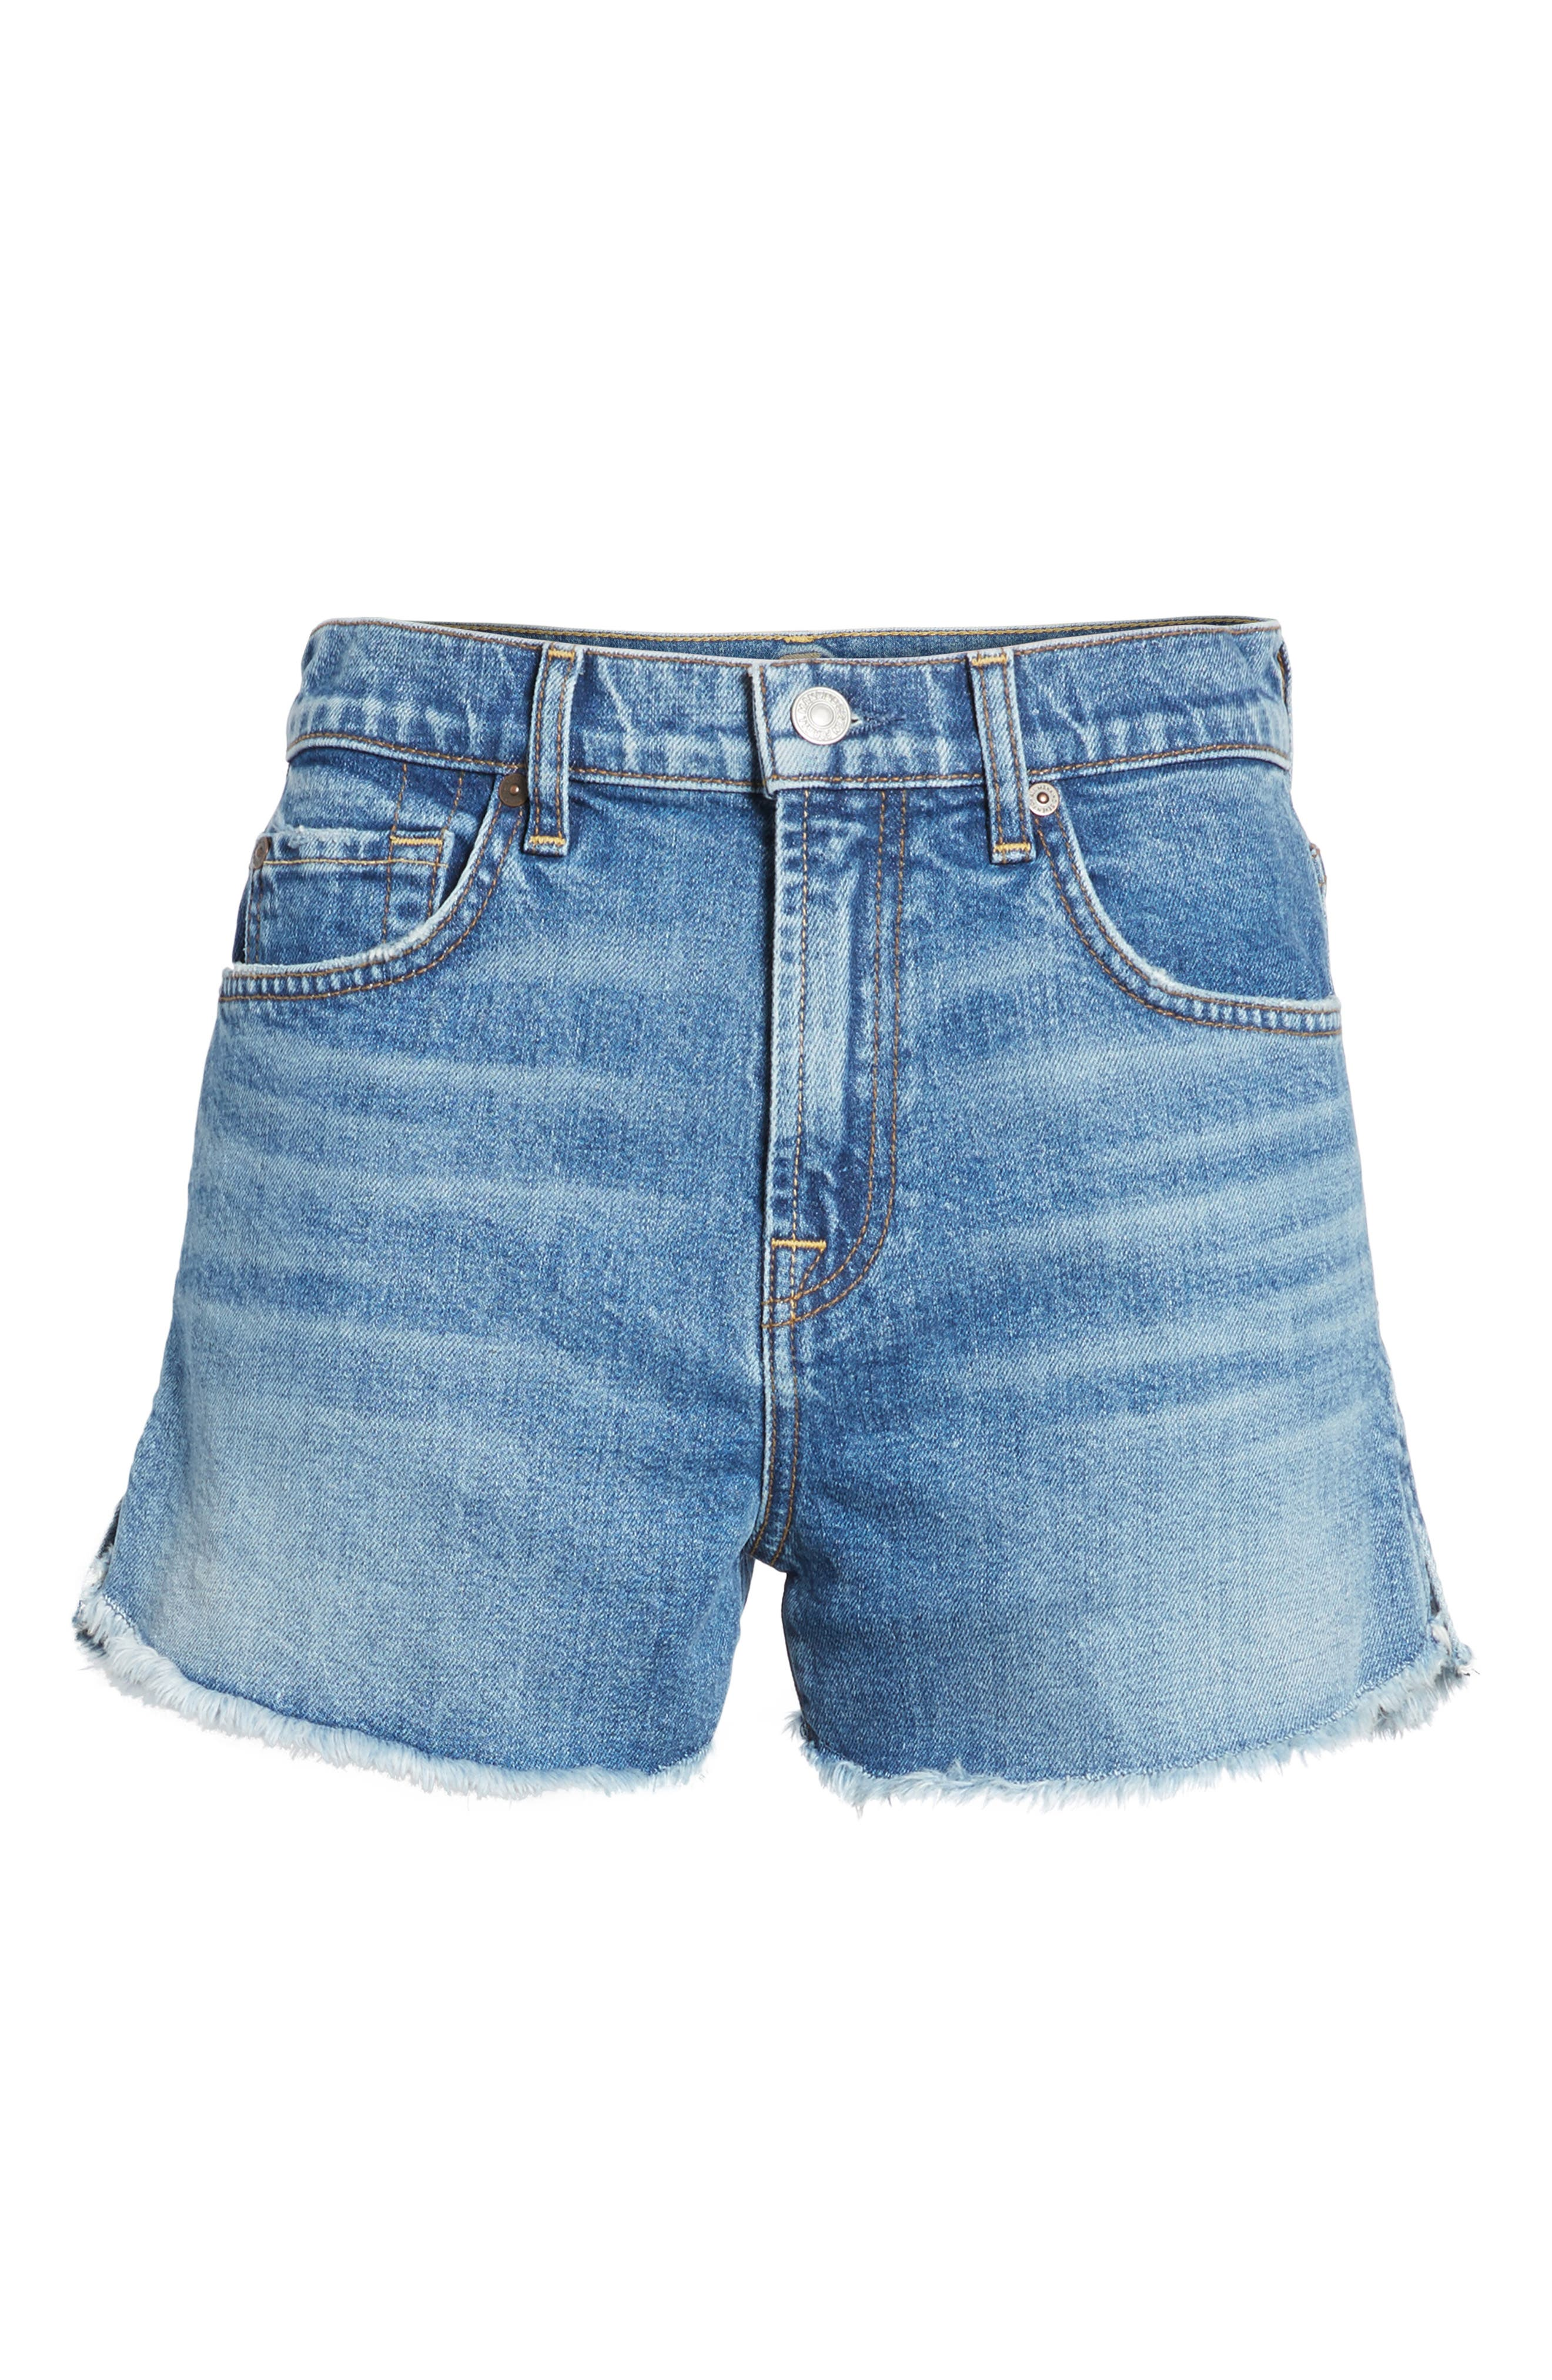 Cutoff Step Hem Denim Shorts,                             Alternate thumbnail 7, color,                             401